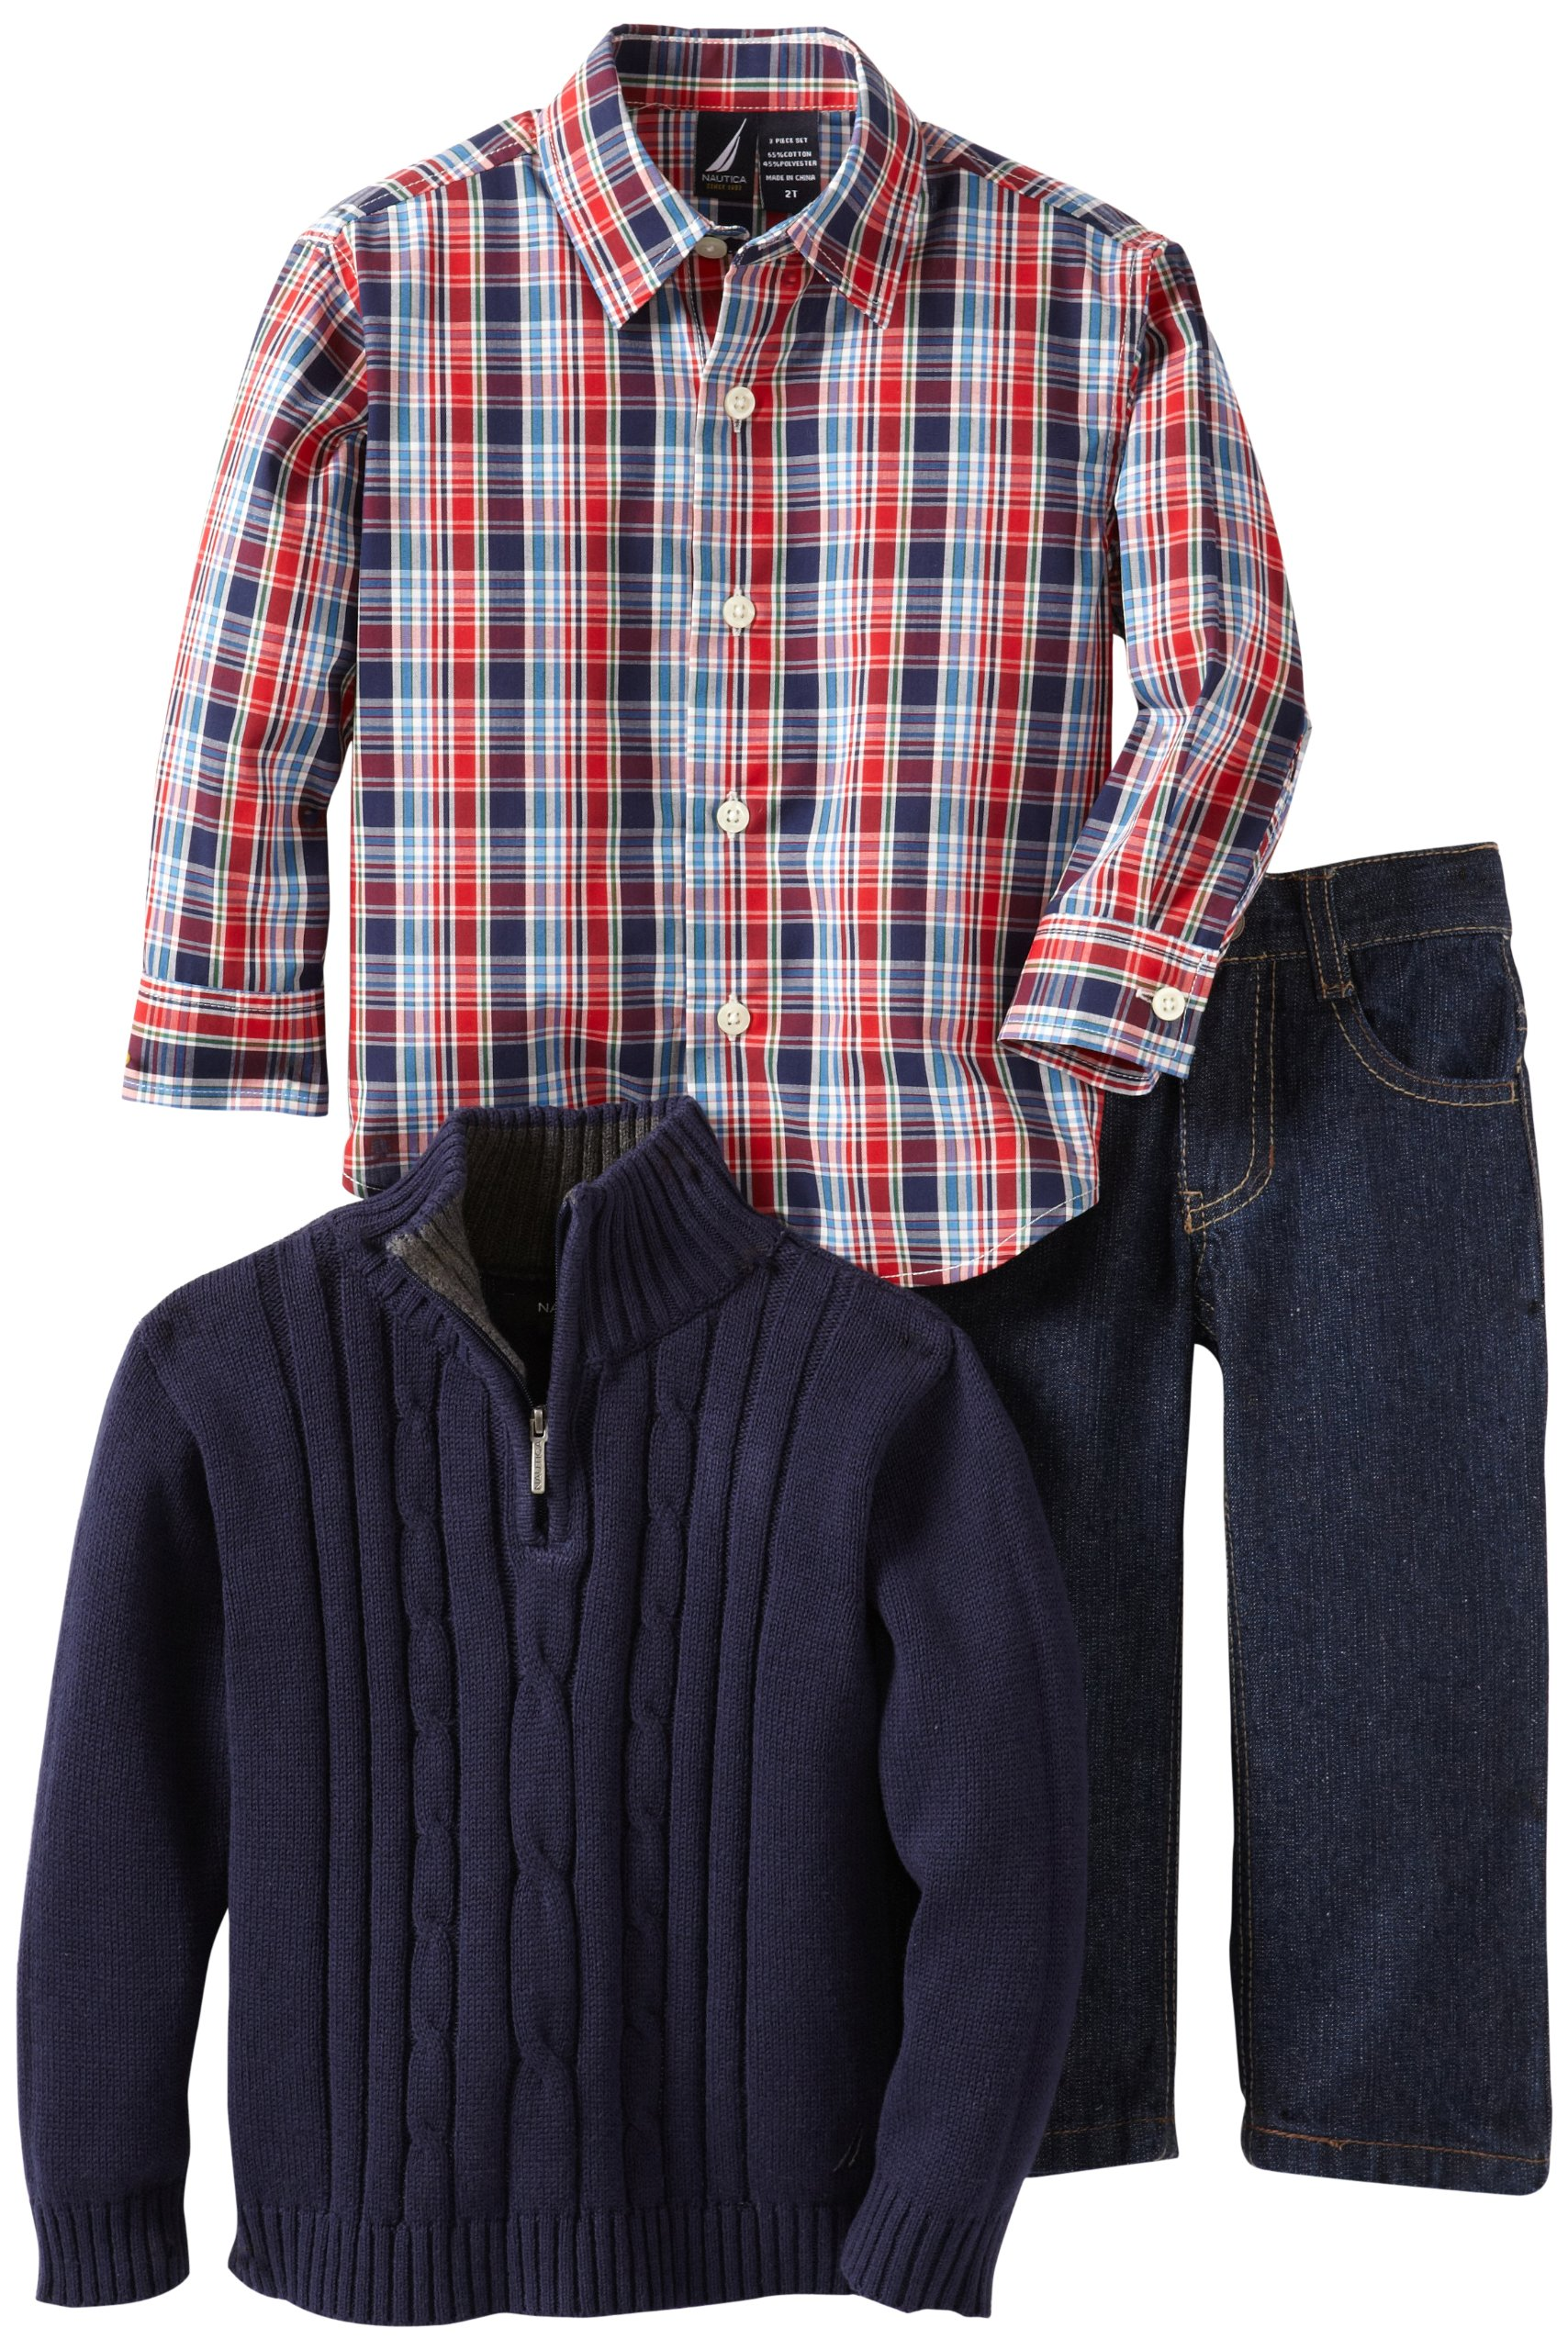 Nautica Sportswear Kids Little Boys' 3 Piece Solid Sweater Set, Peacoat, 2T